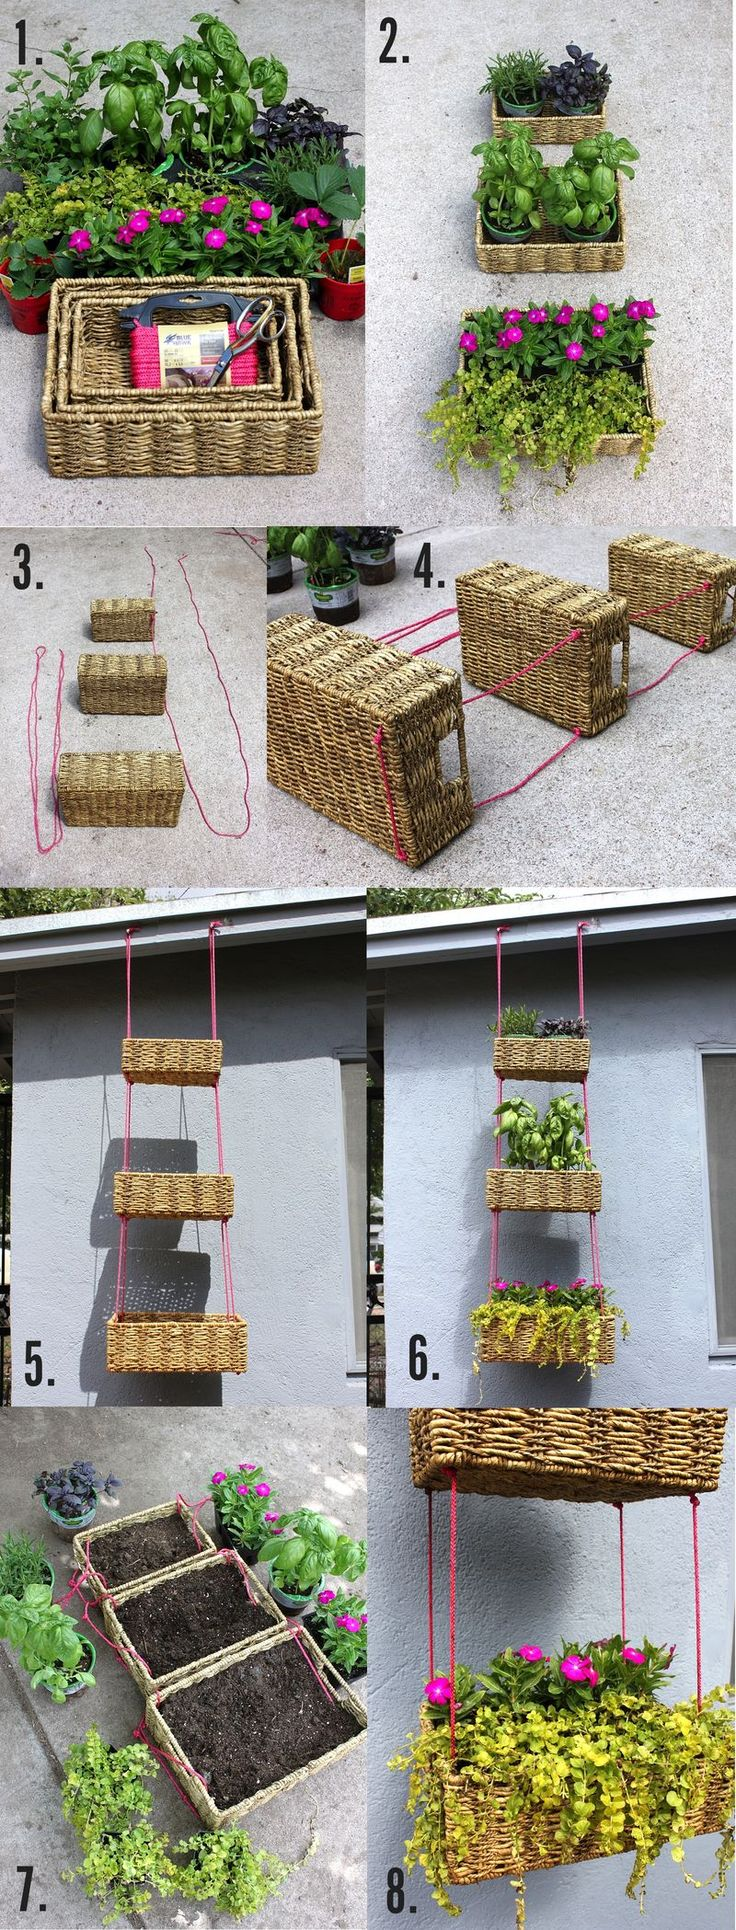 Hanging basket garden: A great project for renters, apartment dwellers, or anyone who wants to enjoy just a little bit more greenery. It's a low risk project as you don't have to dig up any bit of ground and it'll keep your plants safe from any number of antagonists. Keep in mind where you want to hang your vertical garden when choosing your plants to give them their best chance.